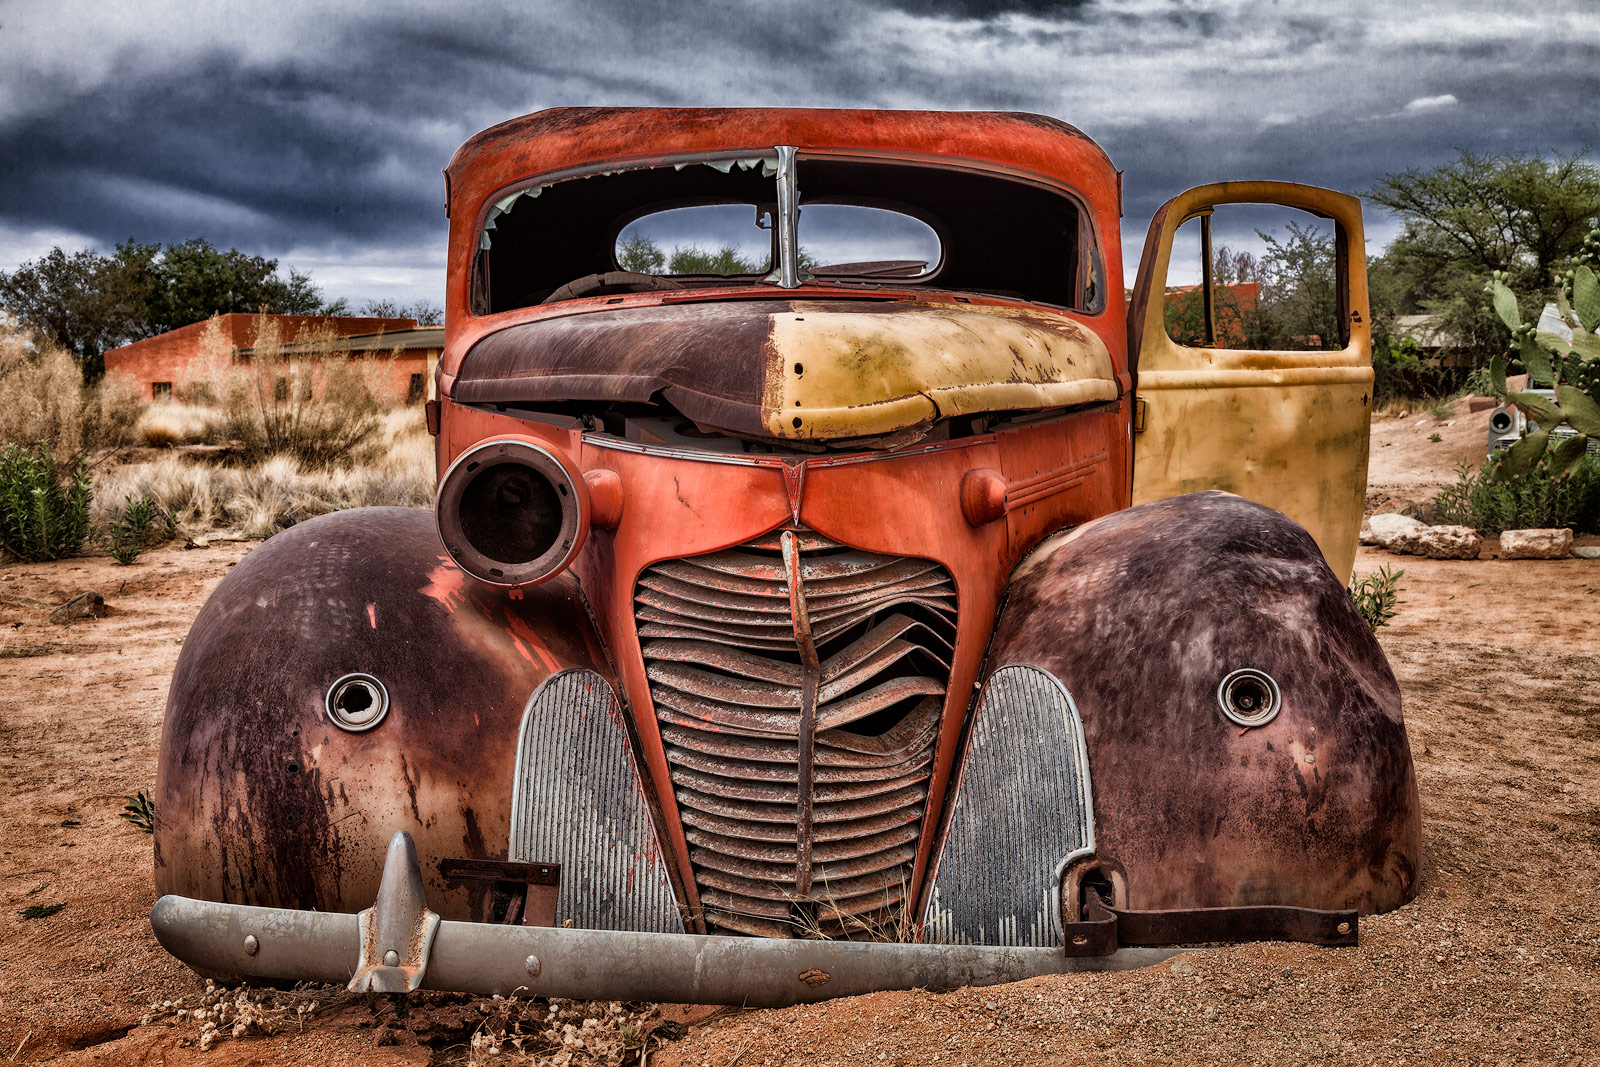 abandoned,africa,african,antique,car,crumbling,desert,dilapidated,horizontal,junked,namibia,namibian,old,rusty,sand,truck, photo